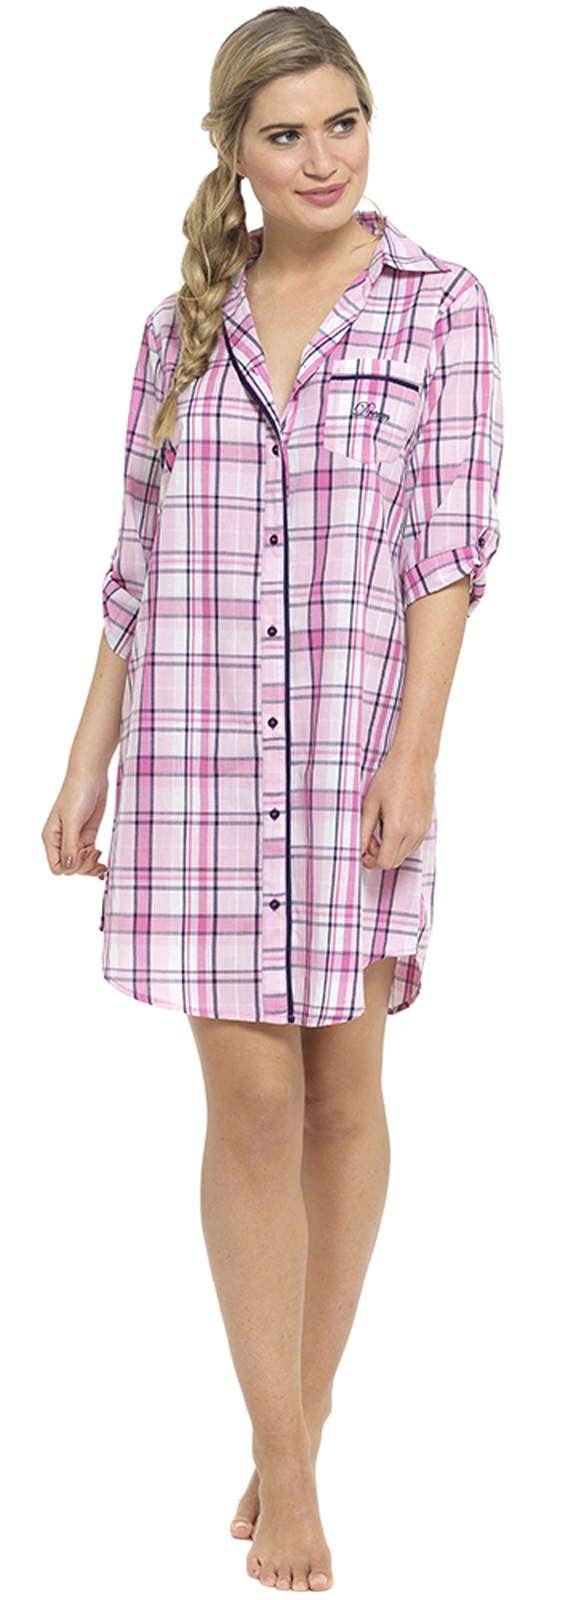 ladies night dress pyjamas - photo #16